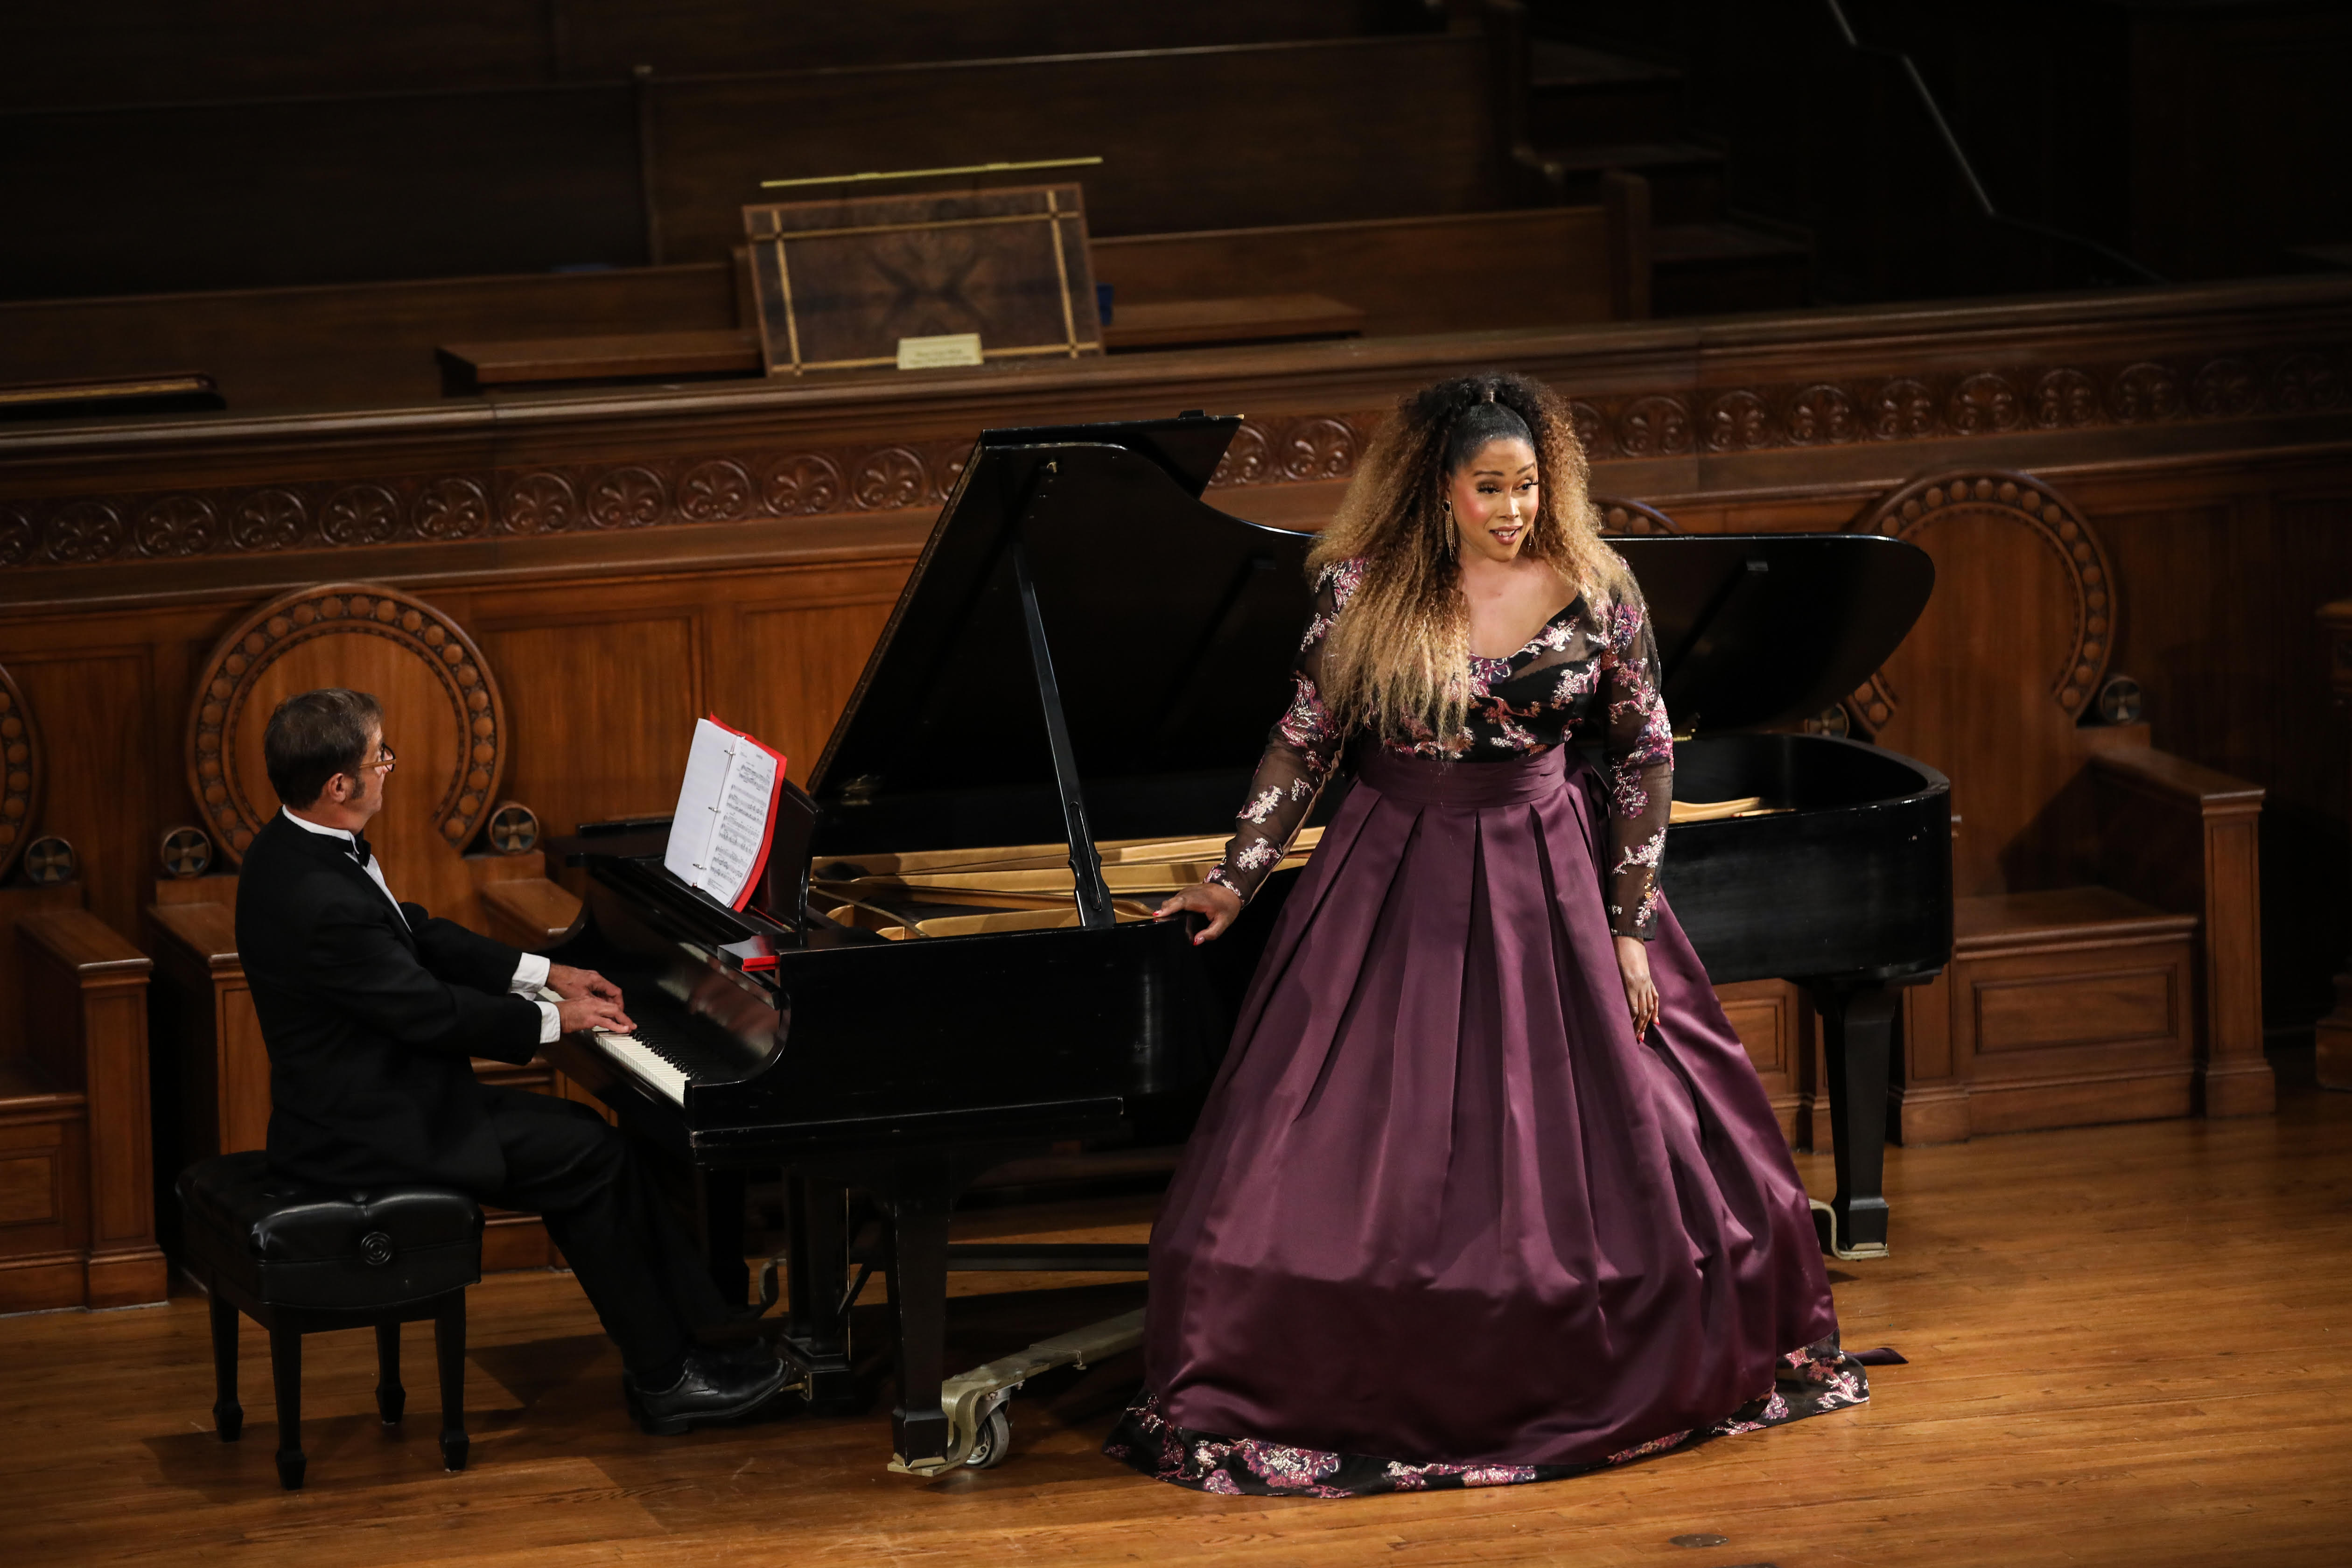 Black woman opera singer with long blond and black hair in a floor length long-sleeved hooped burgundy dress standing in front of a grand piano on stage